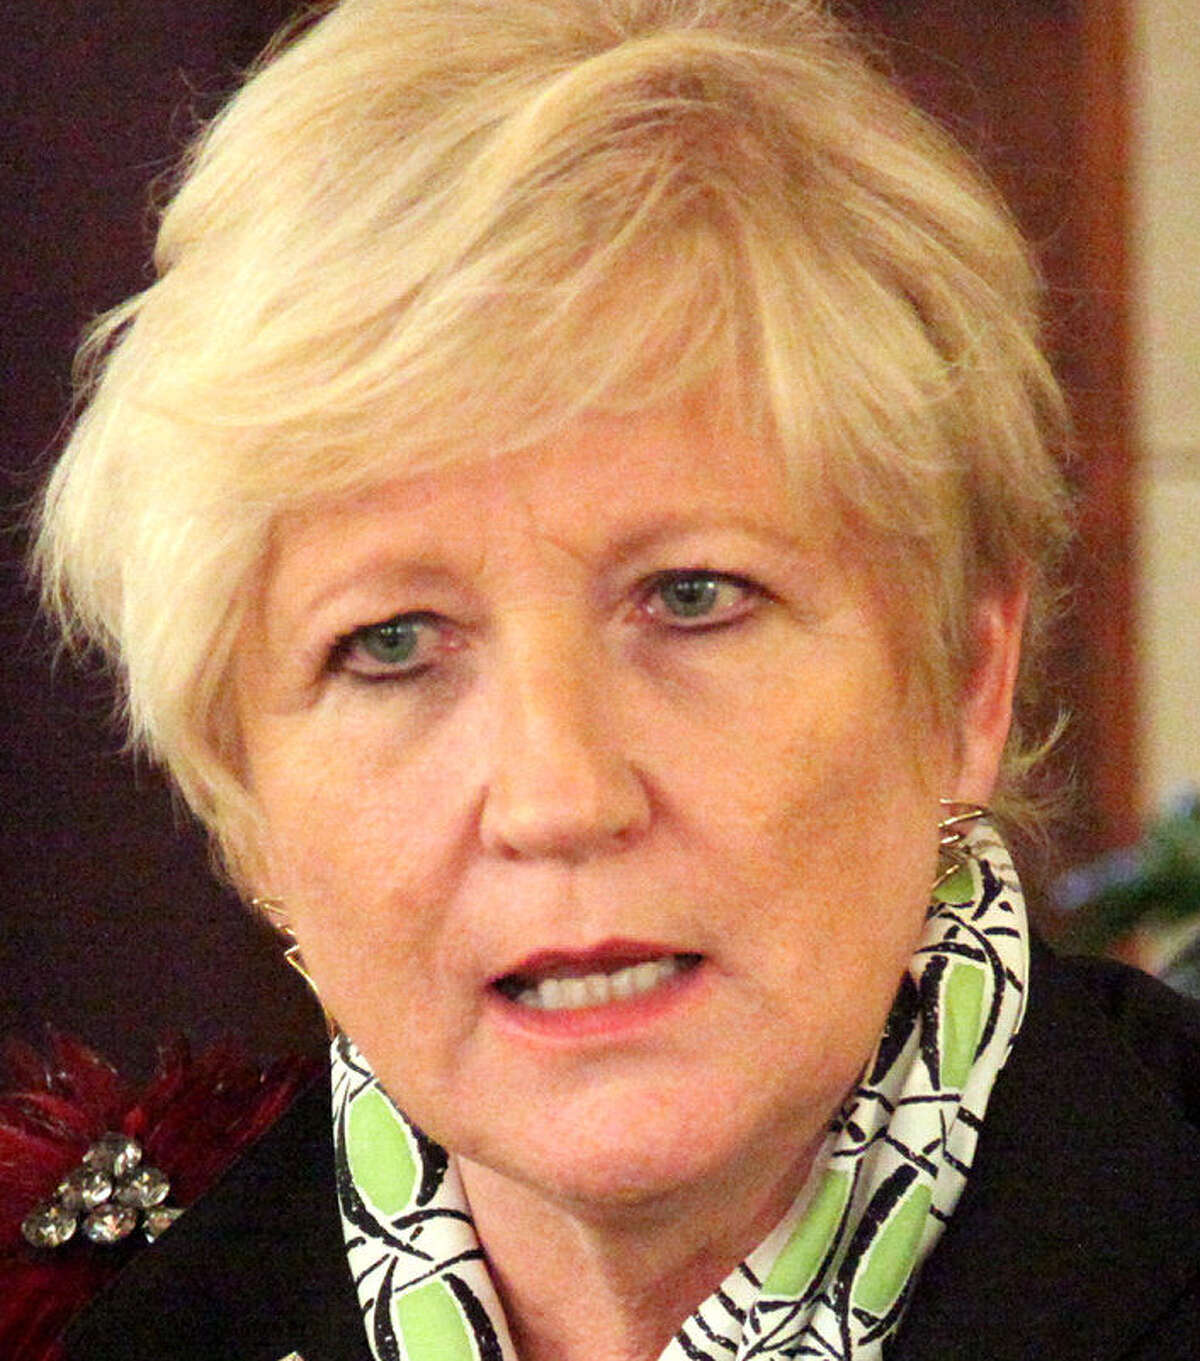 Bexar DA Susan Reed has theories on the money.